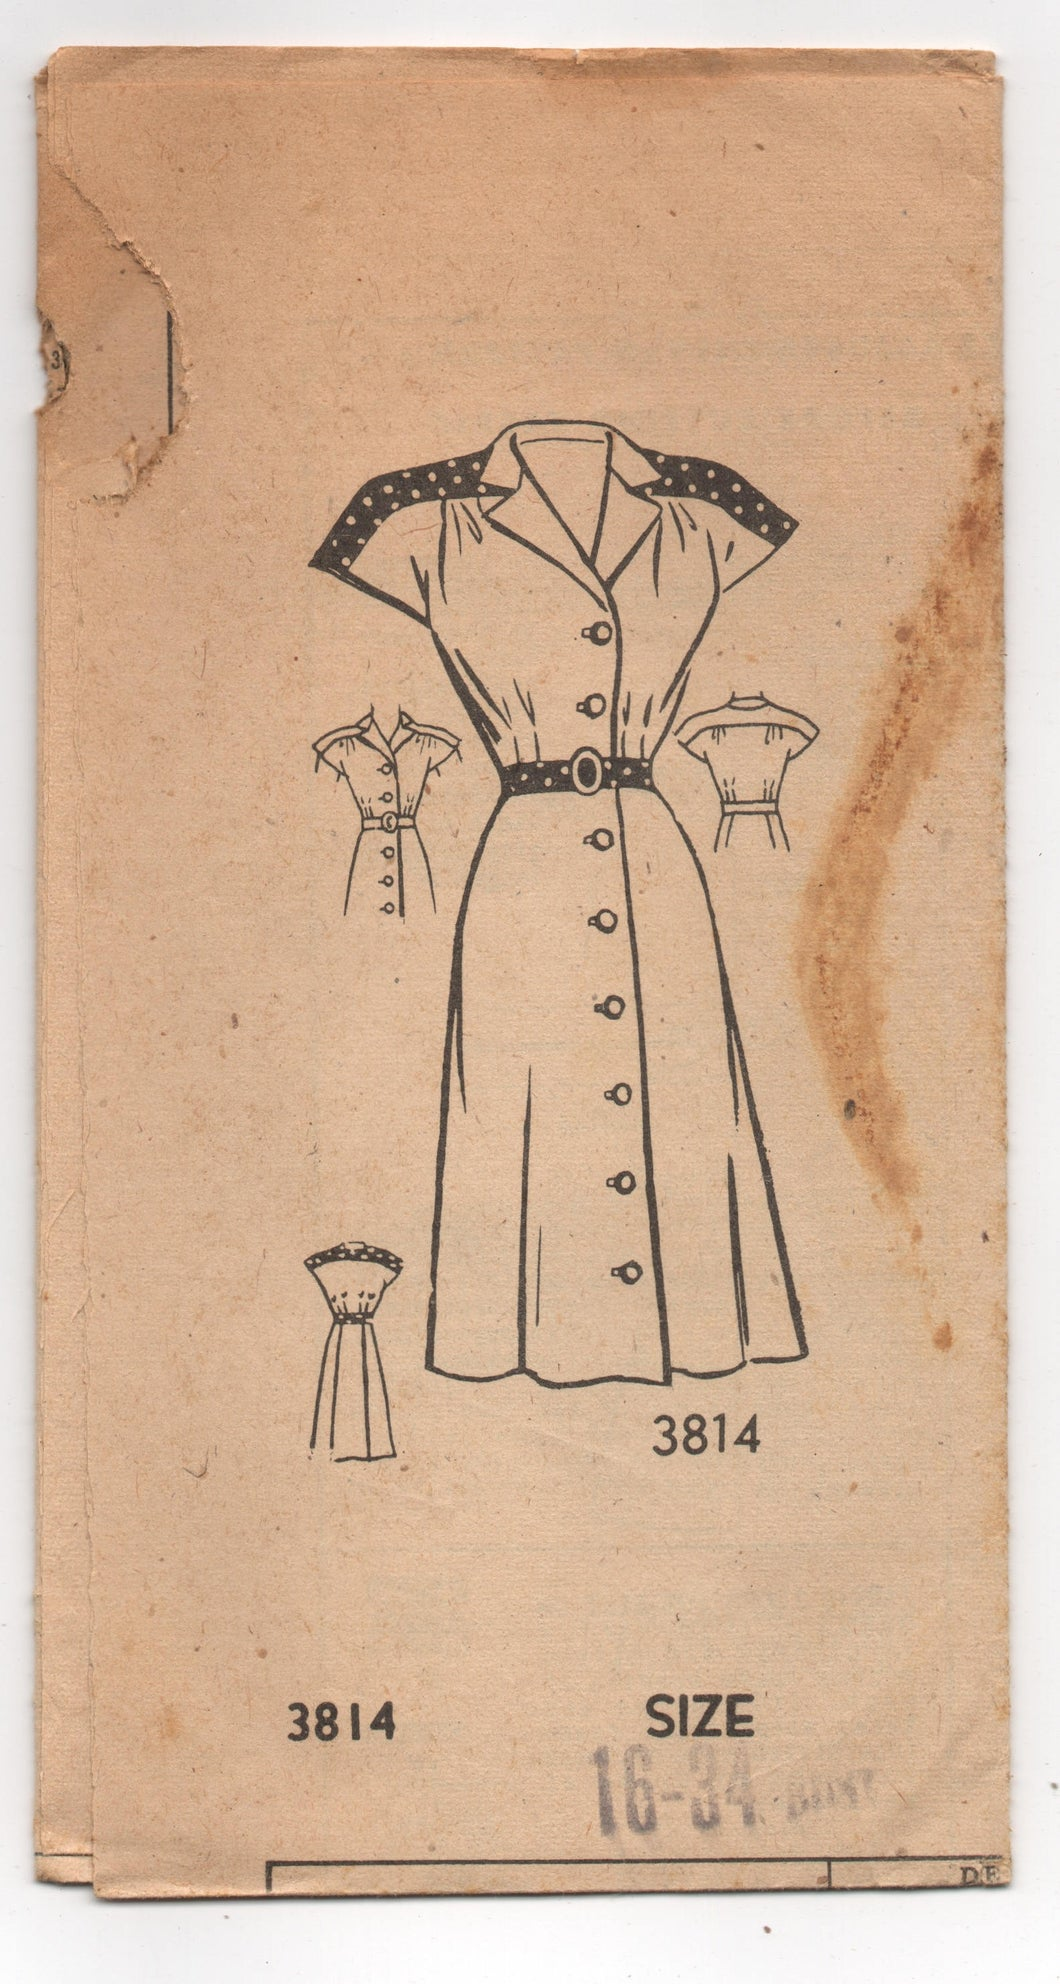 1940's American Weekly One Piece Shirtwaist dress with Cap Sleeves and Contrast Yoke pattern - Bust 34